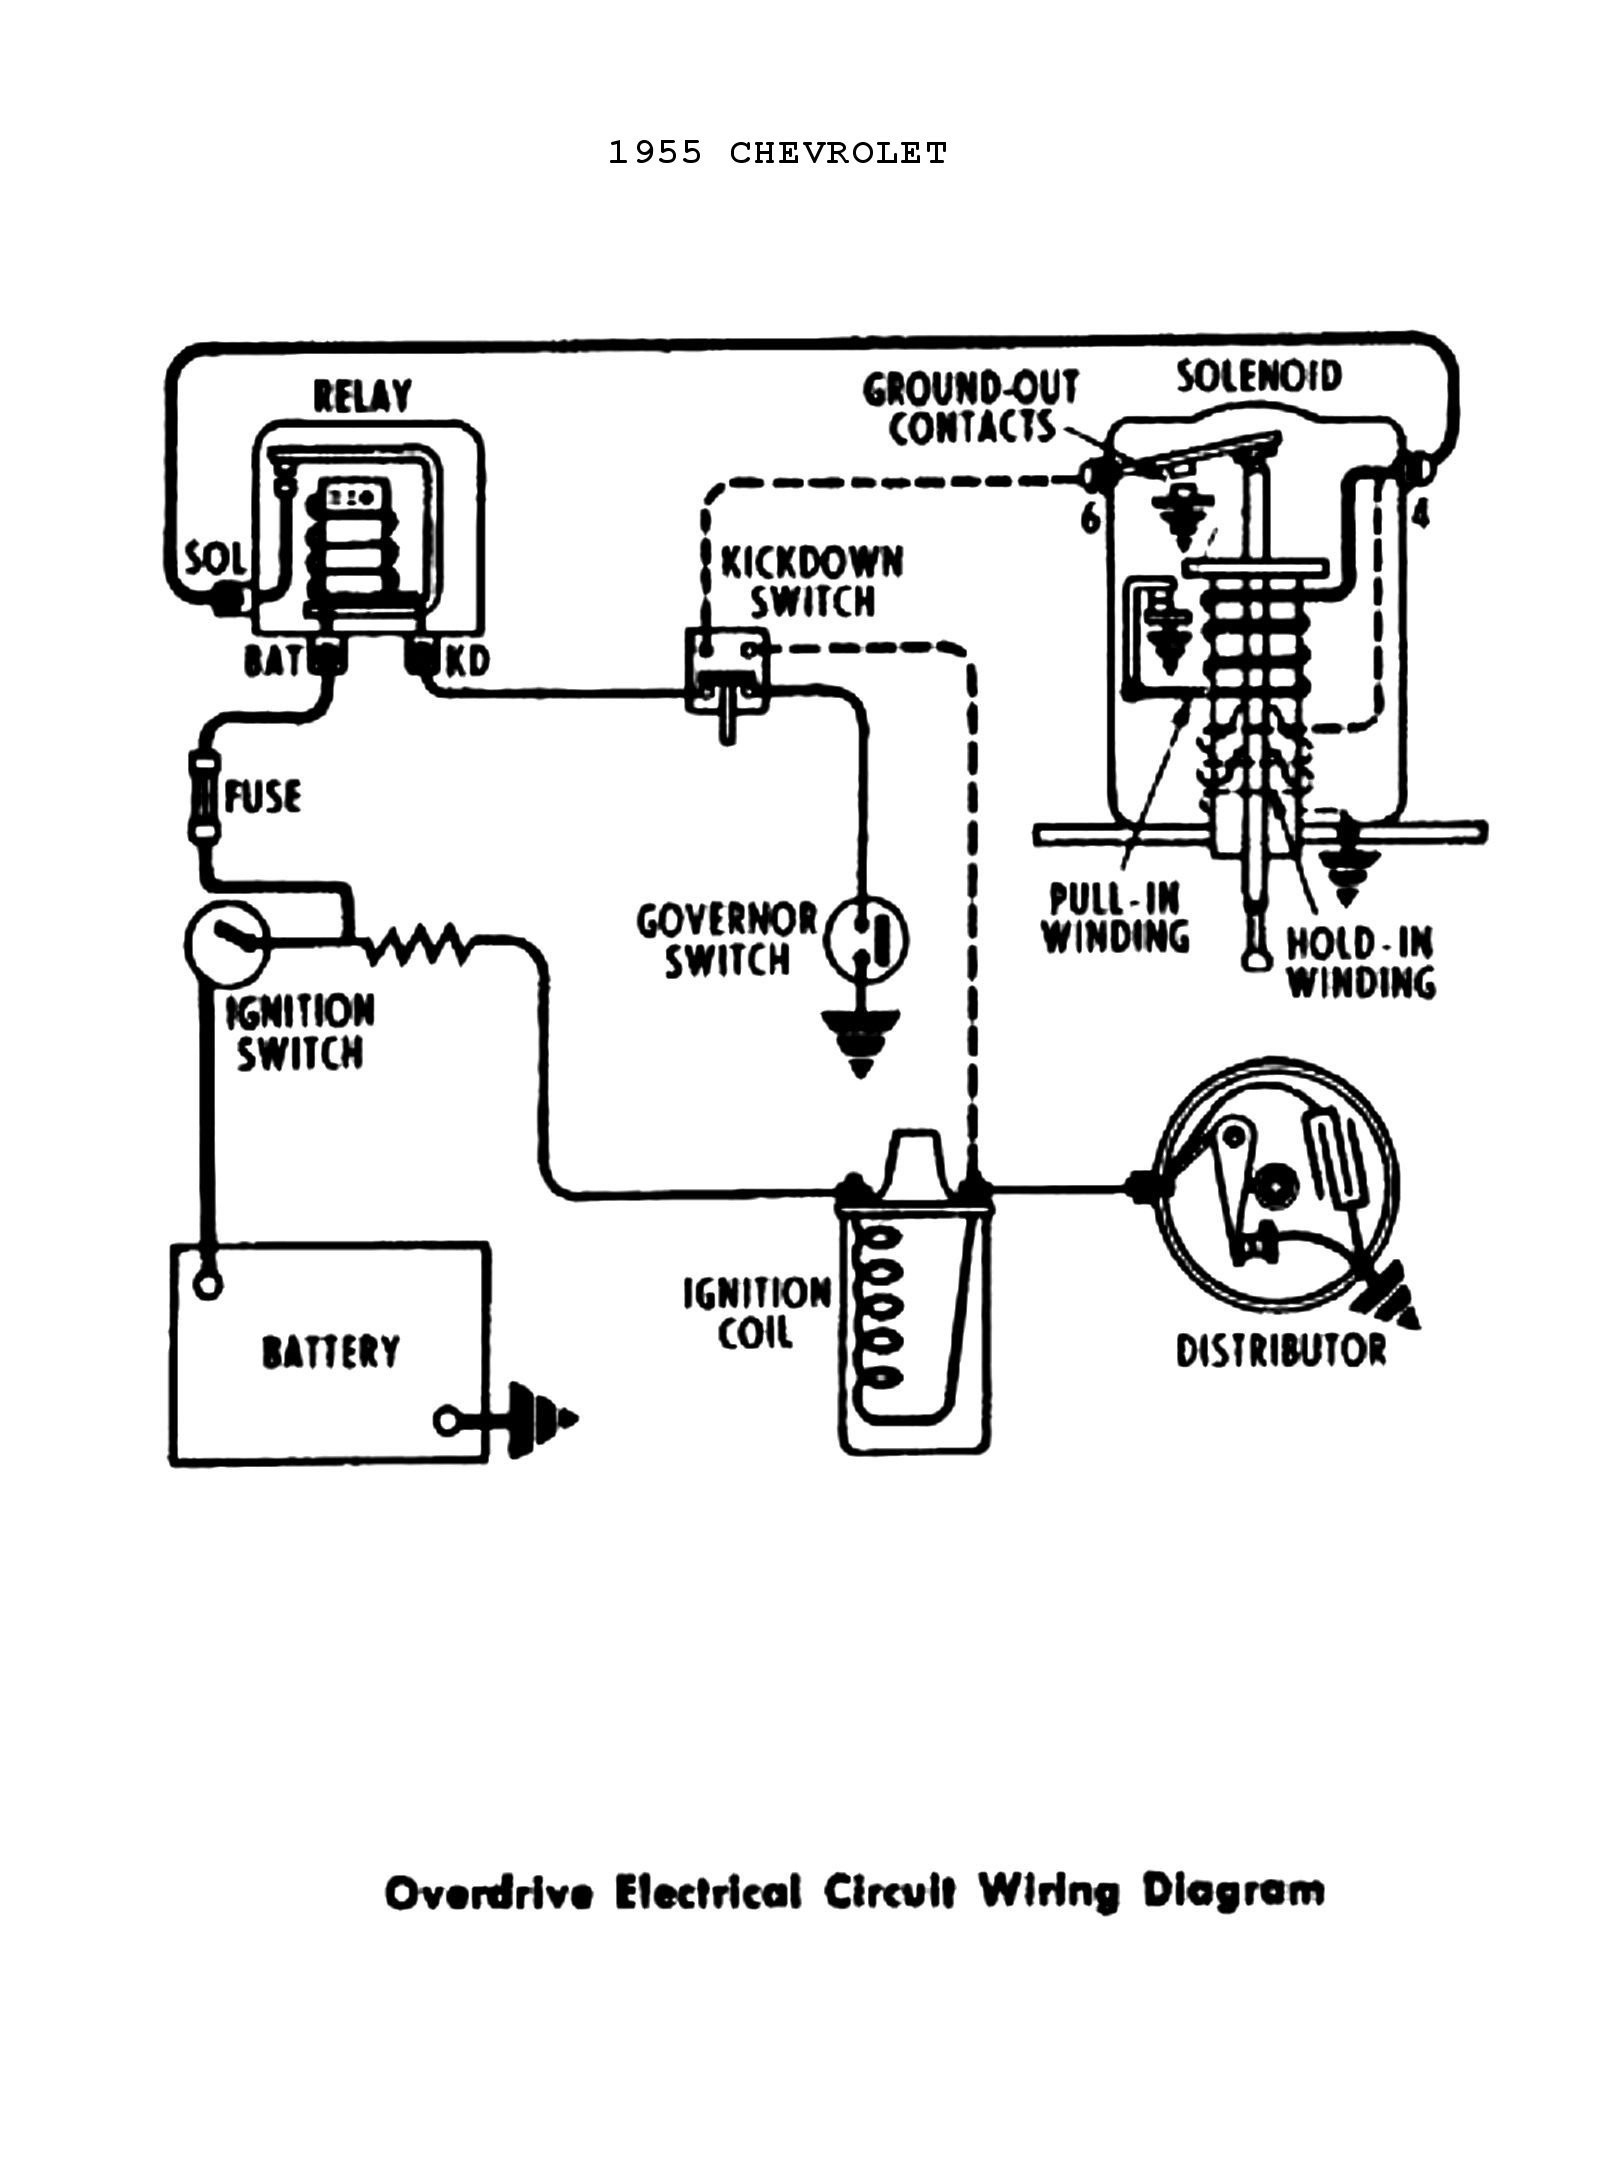 gm body control module wiring diagram | free wiring diagram gm starter wiring diagram free download schematic #5